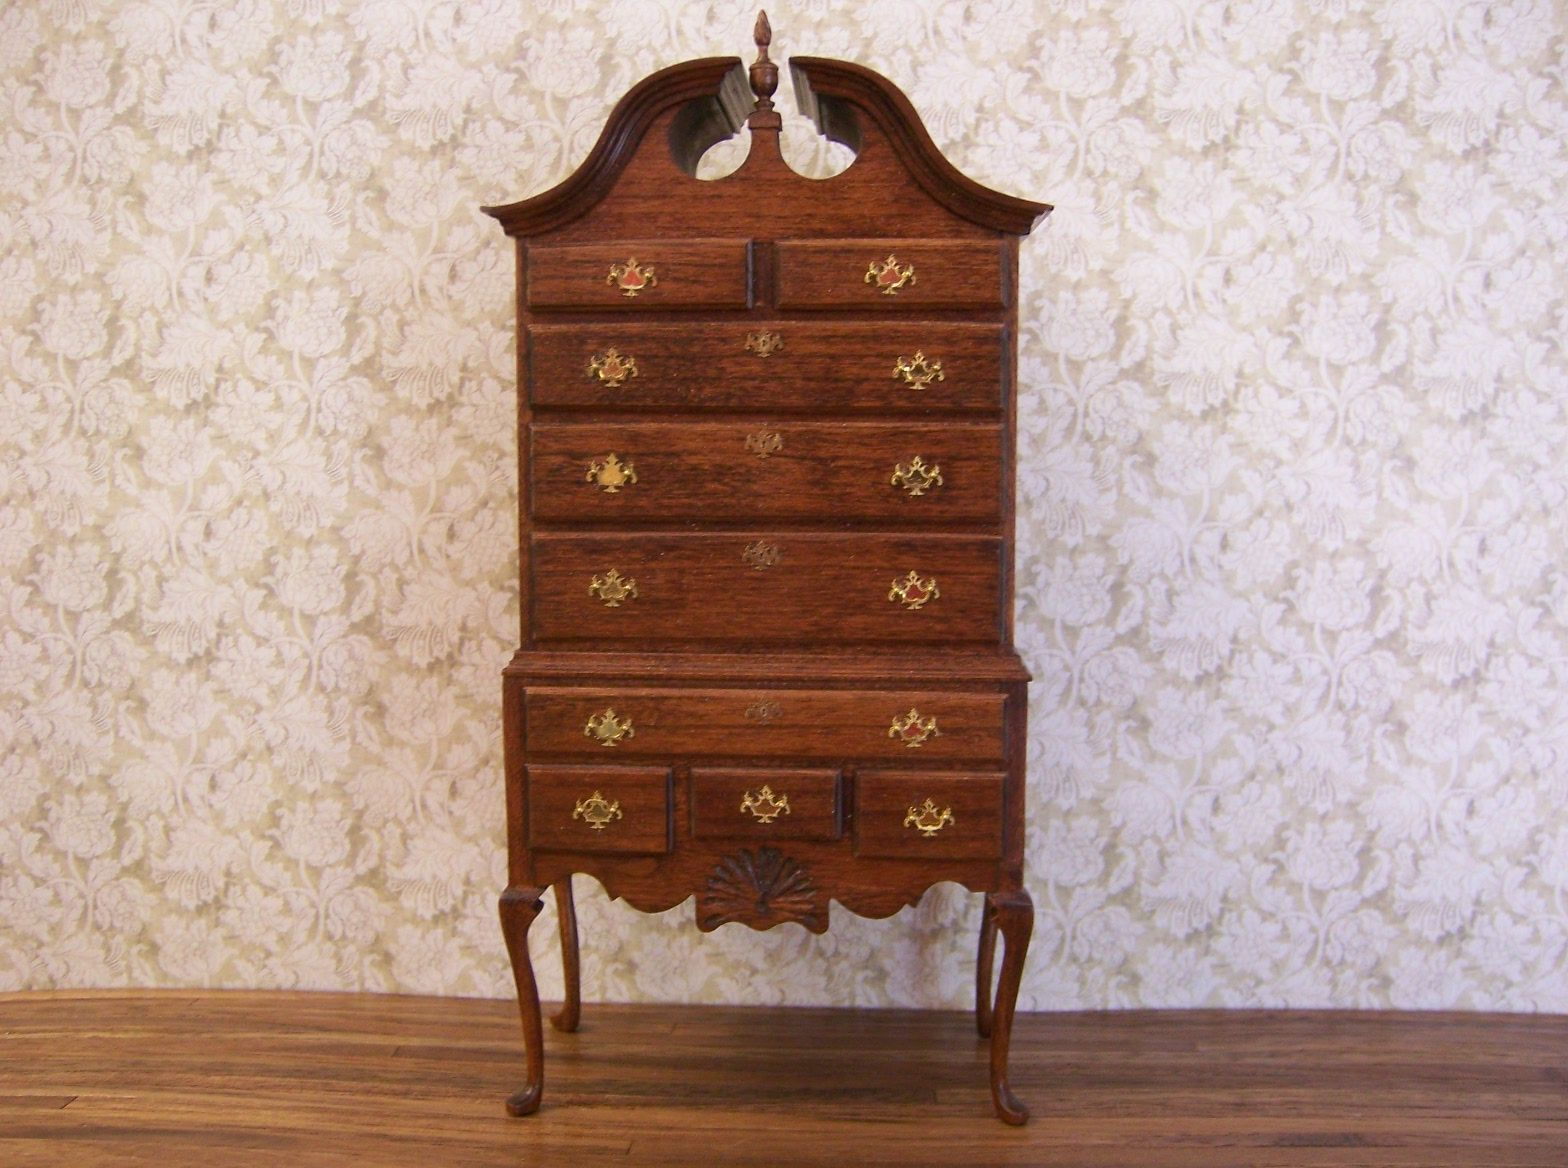 Duncan Phyfe chest of drawers. Antique style. I like it, it adds to